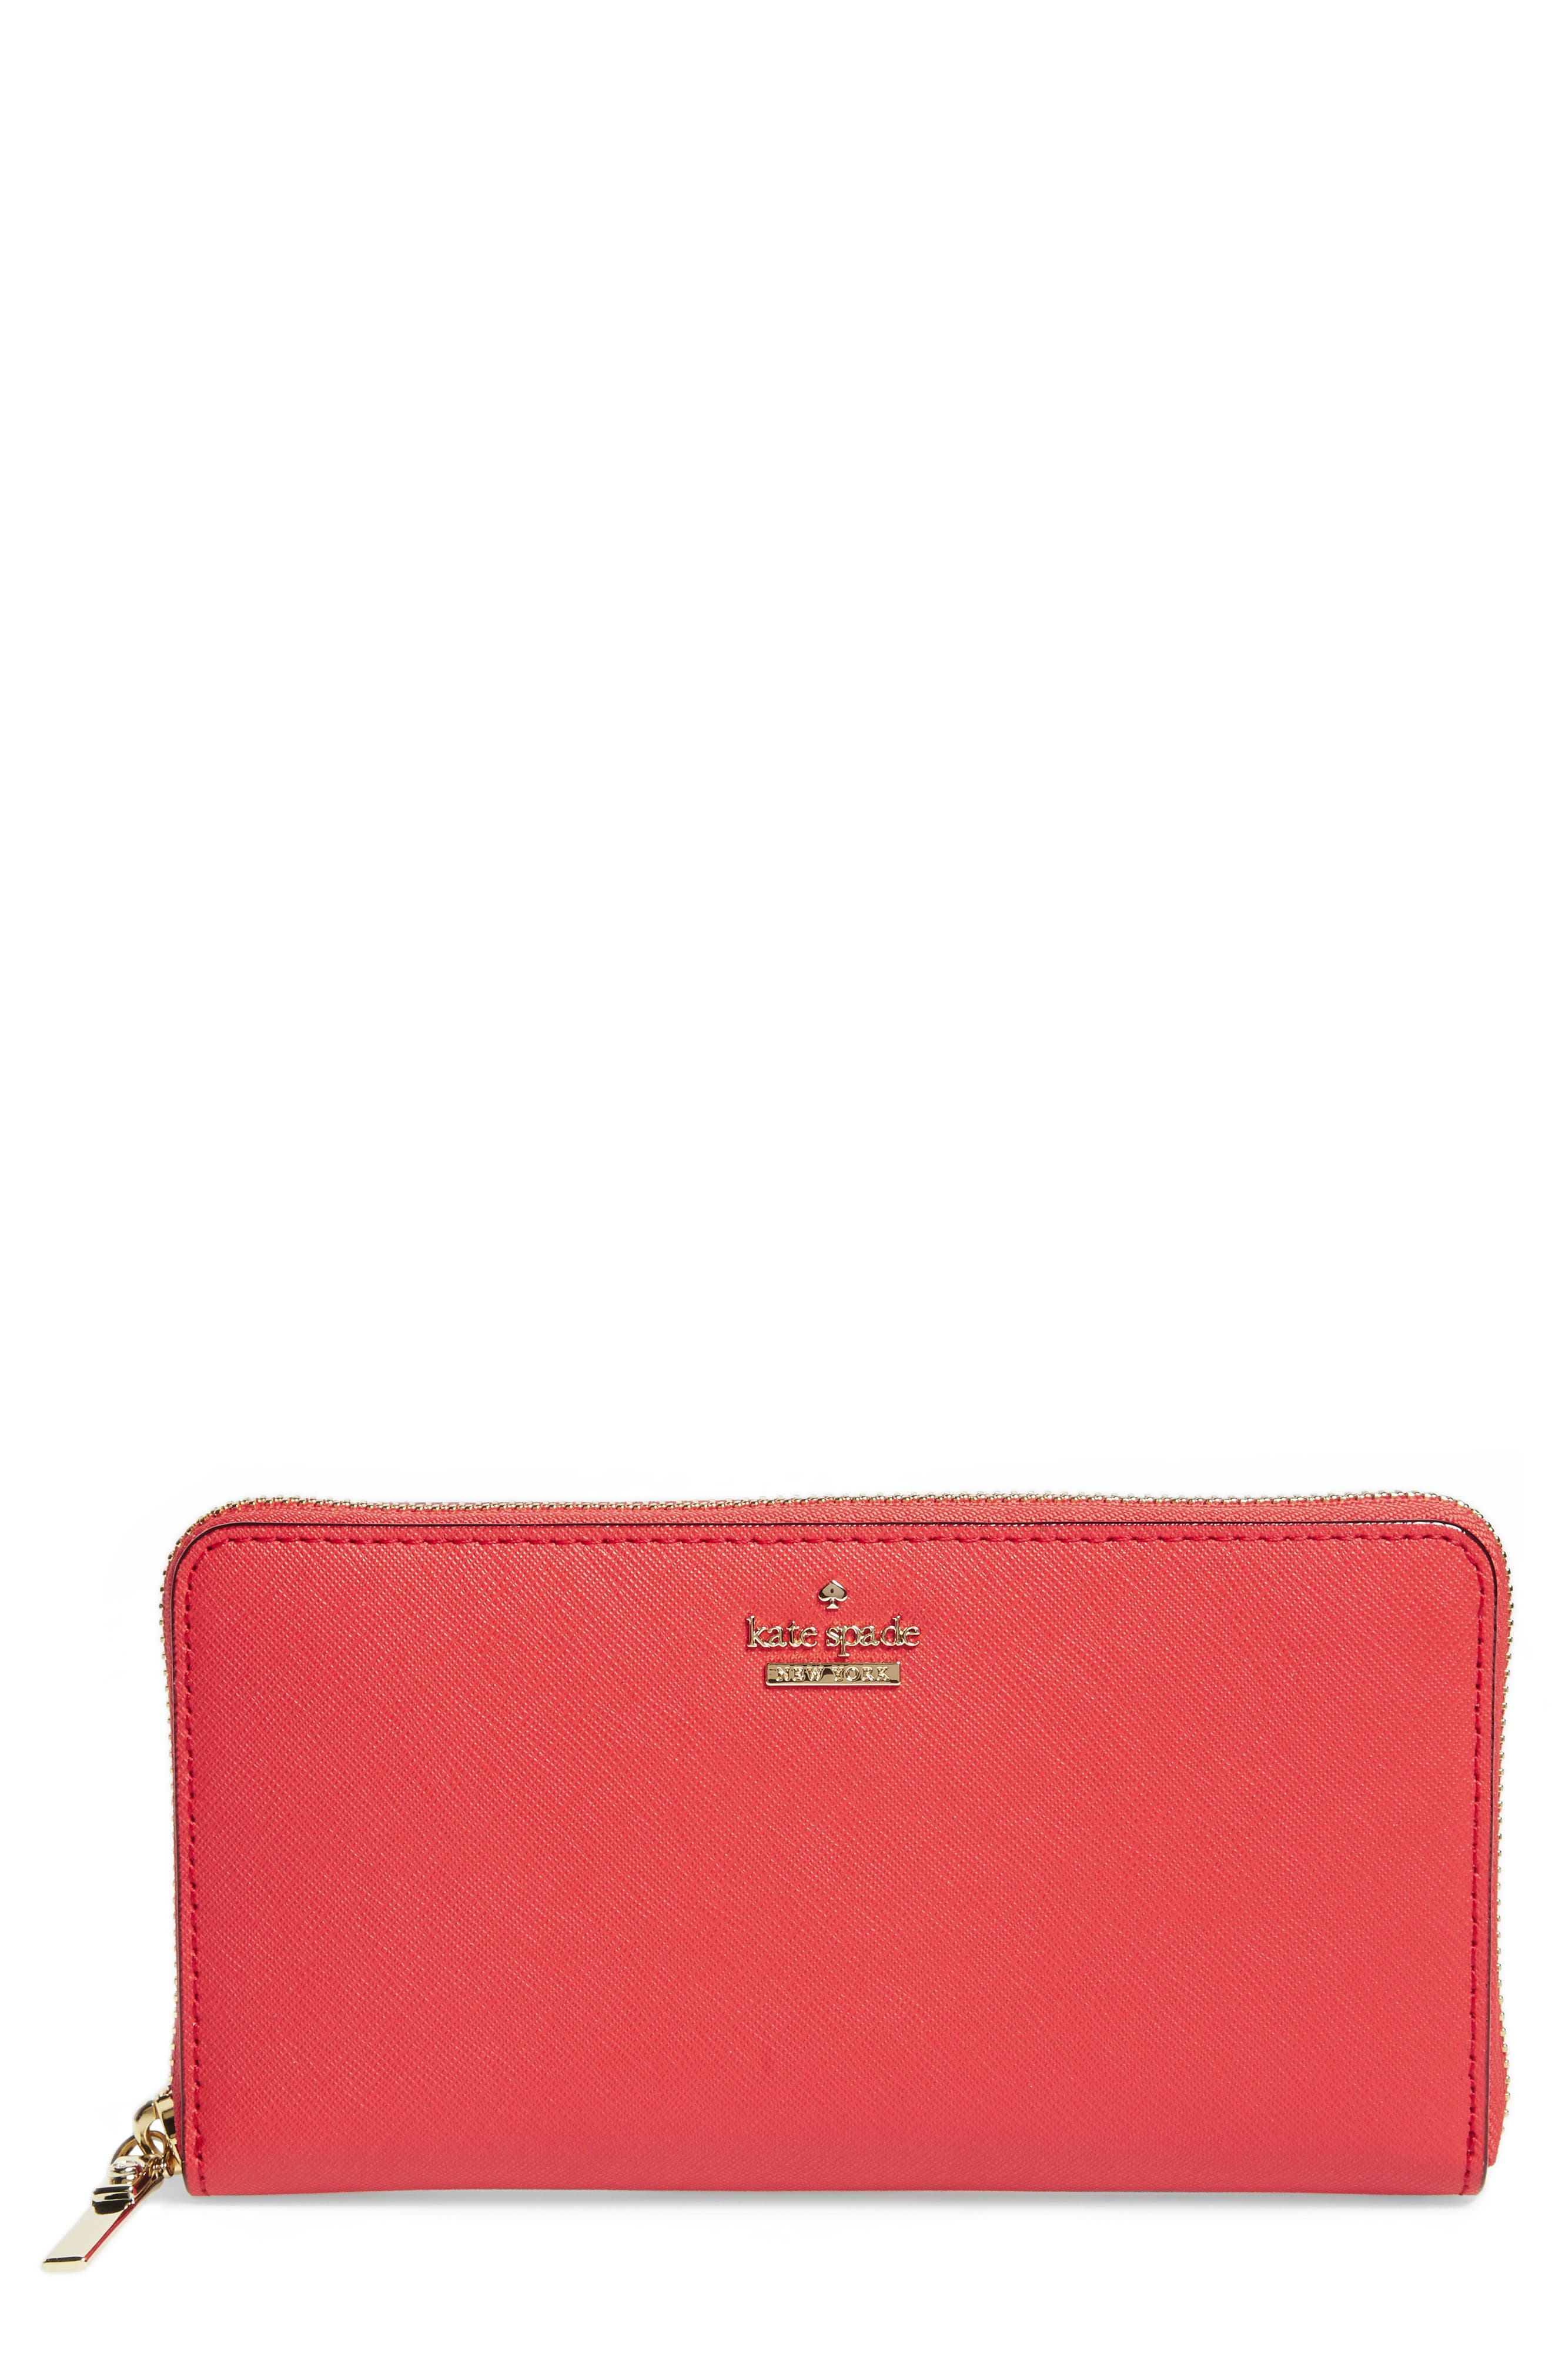 'cameron street - lacey' leather wallet,                             Main thumbnail 17, color,